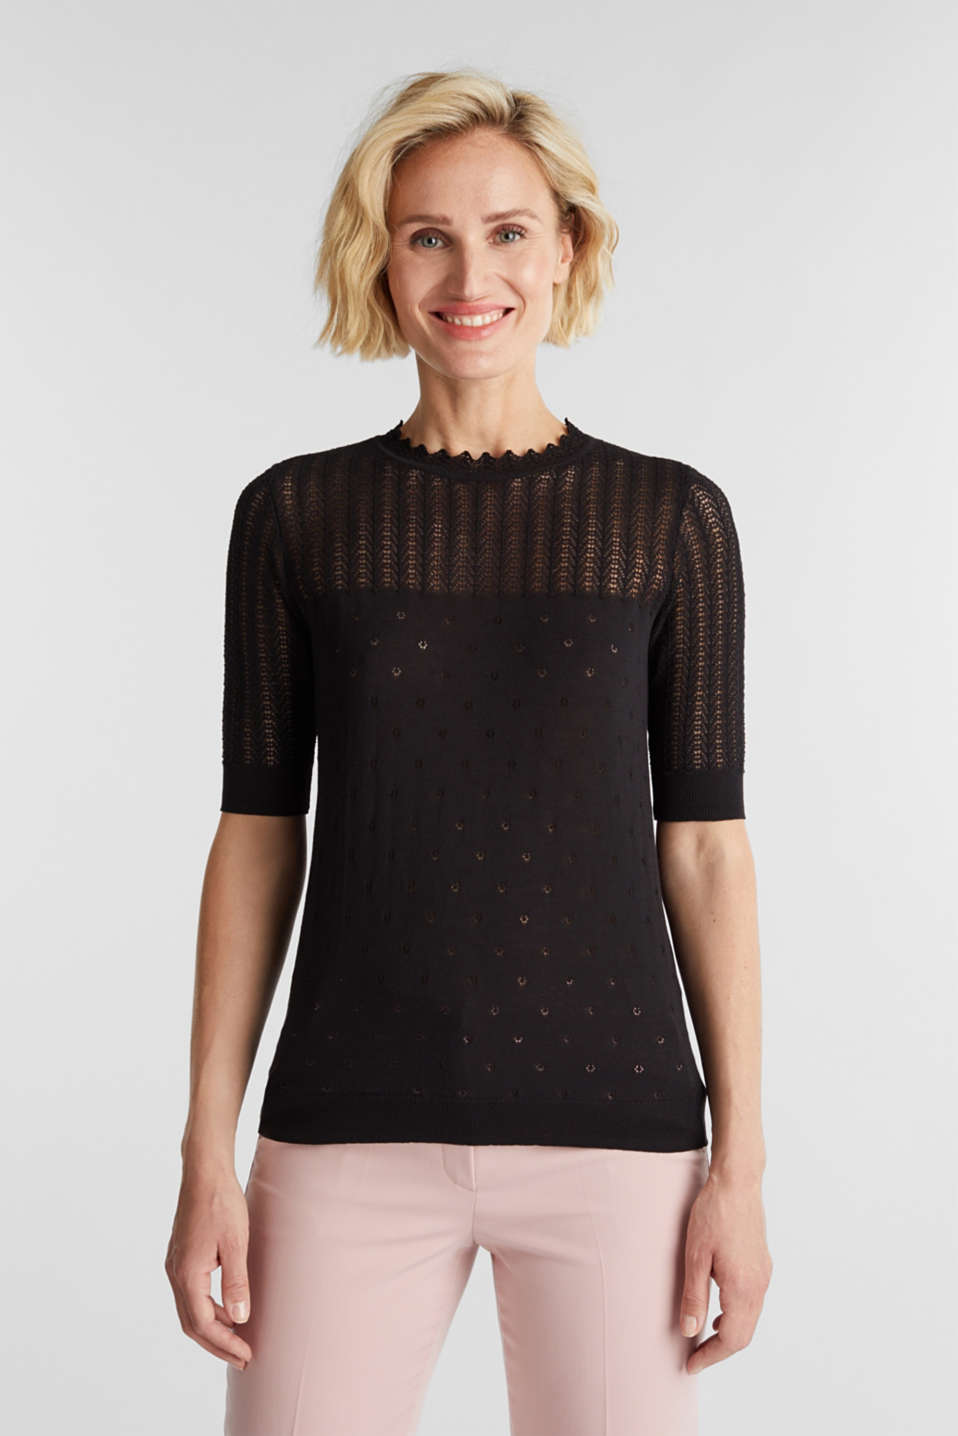 Esprit - Short-sleeved jumper with an openwork pattern and lace